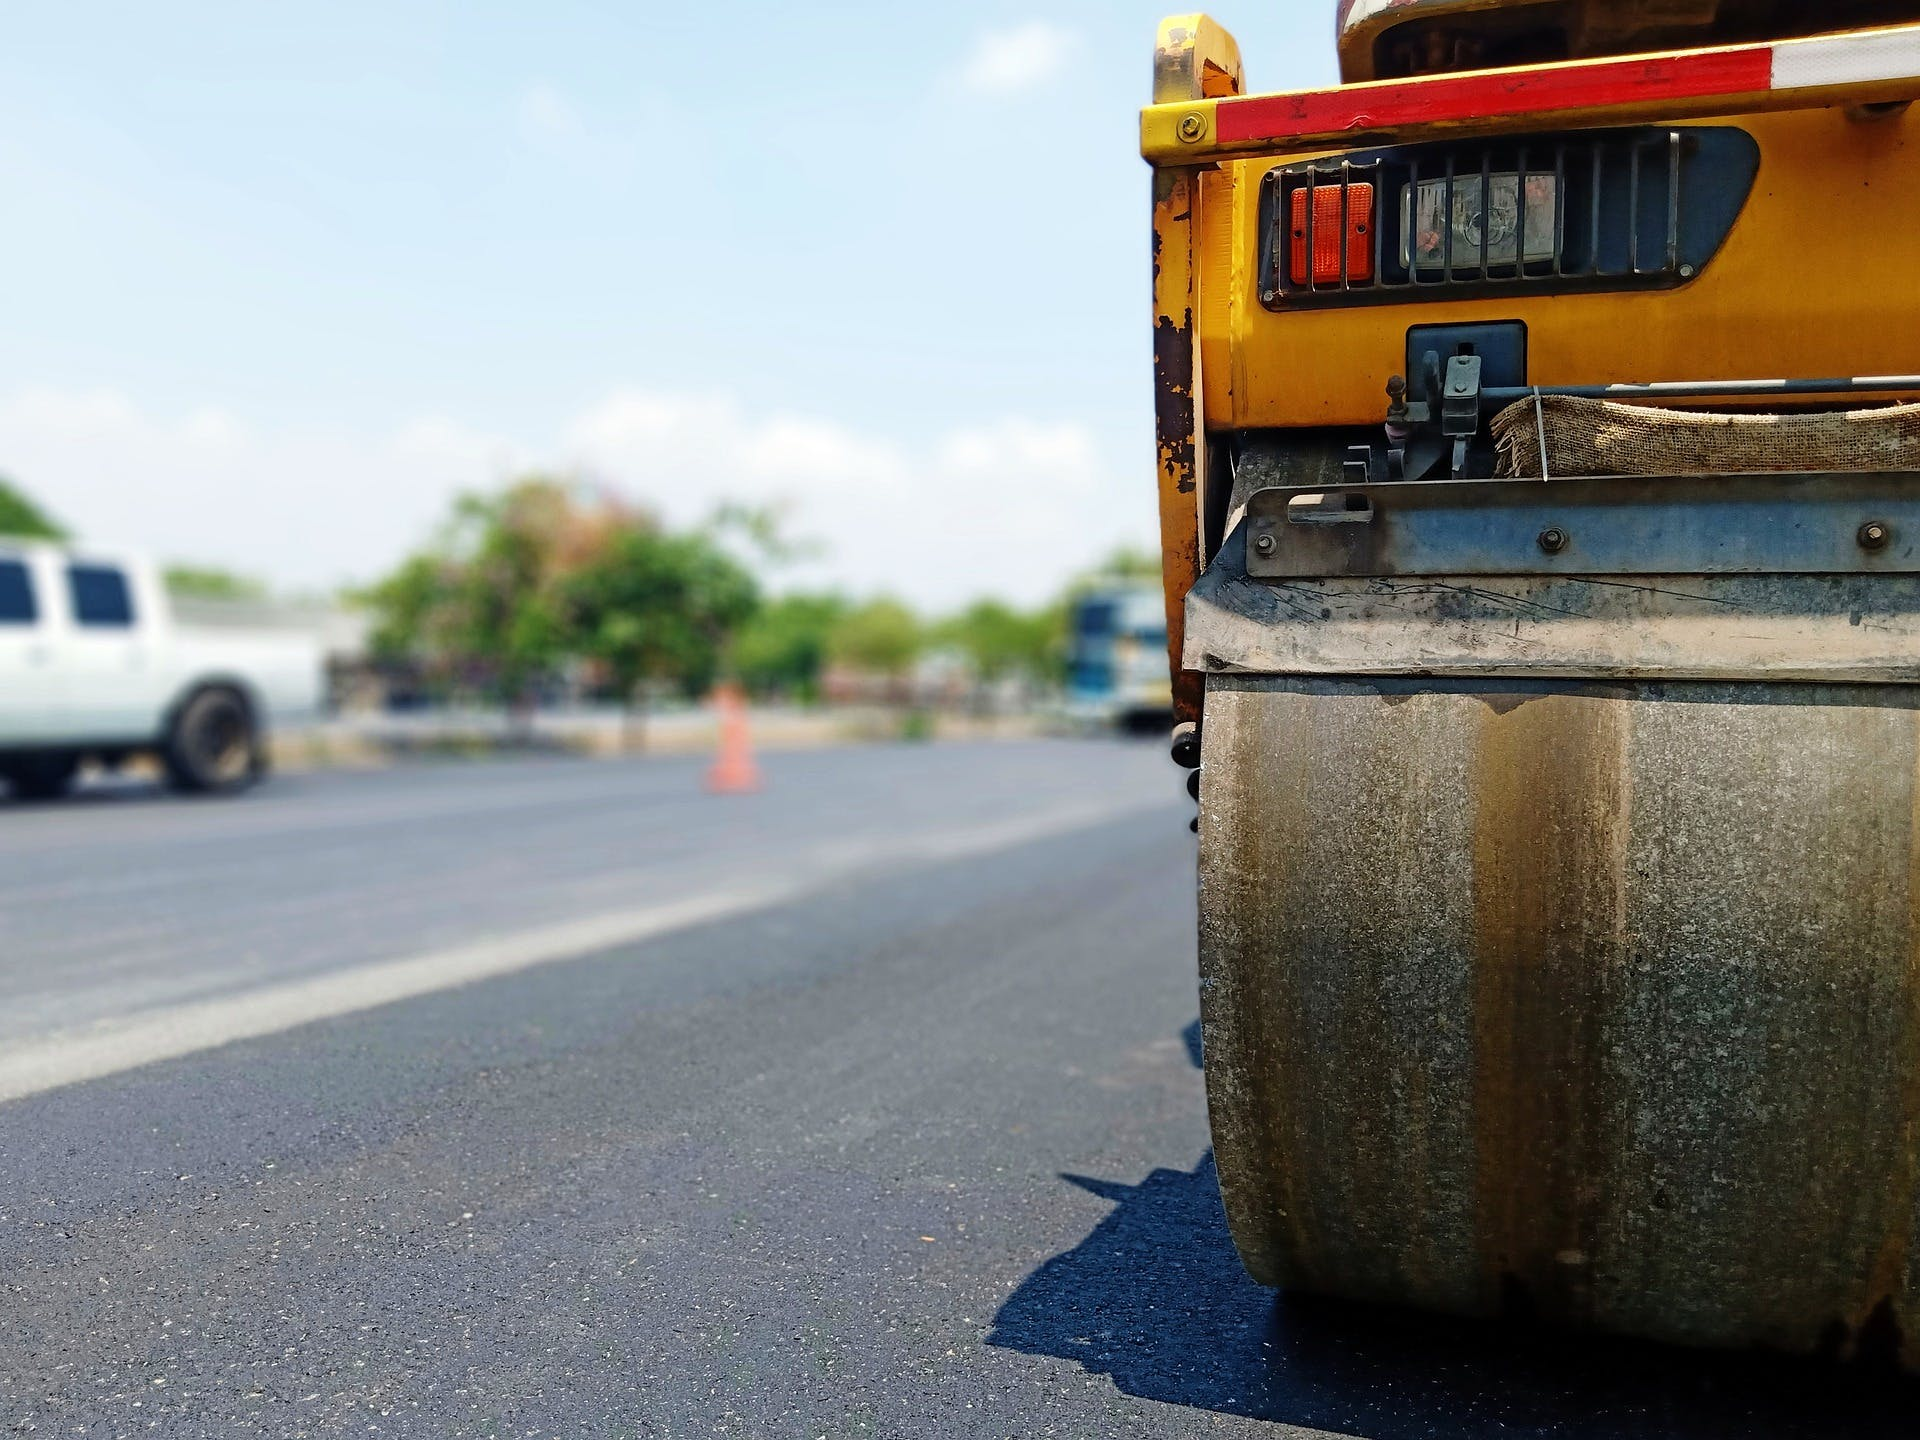 Highway construction accidents